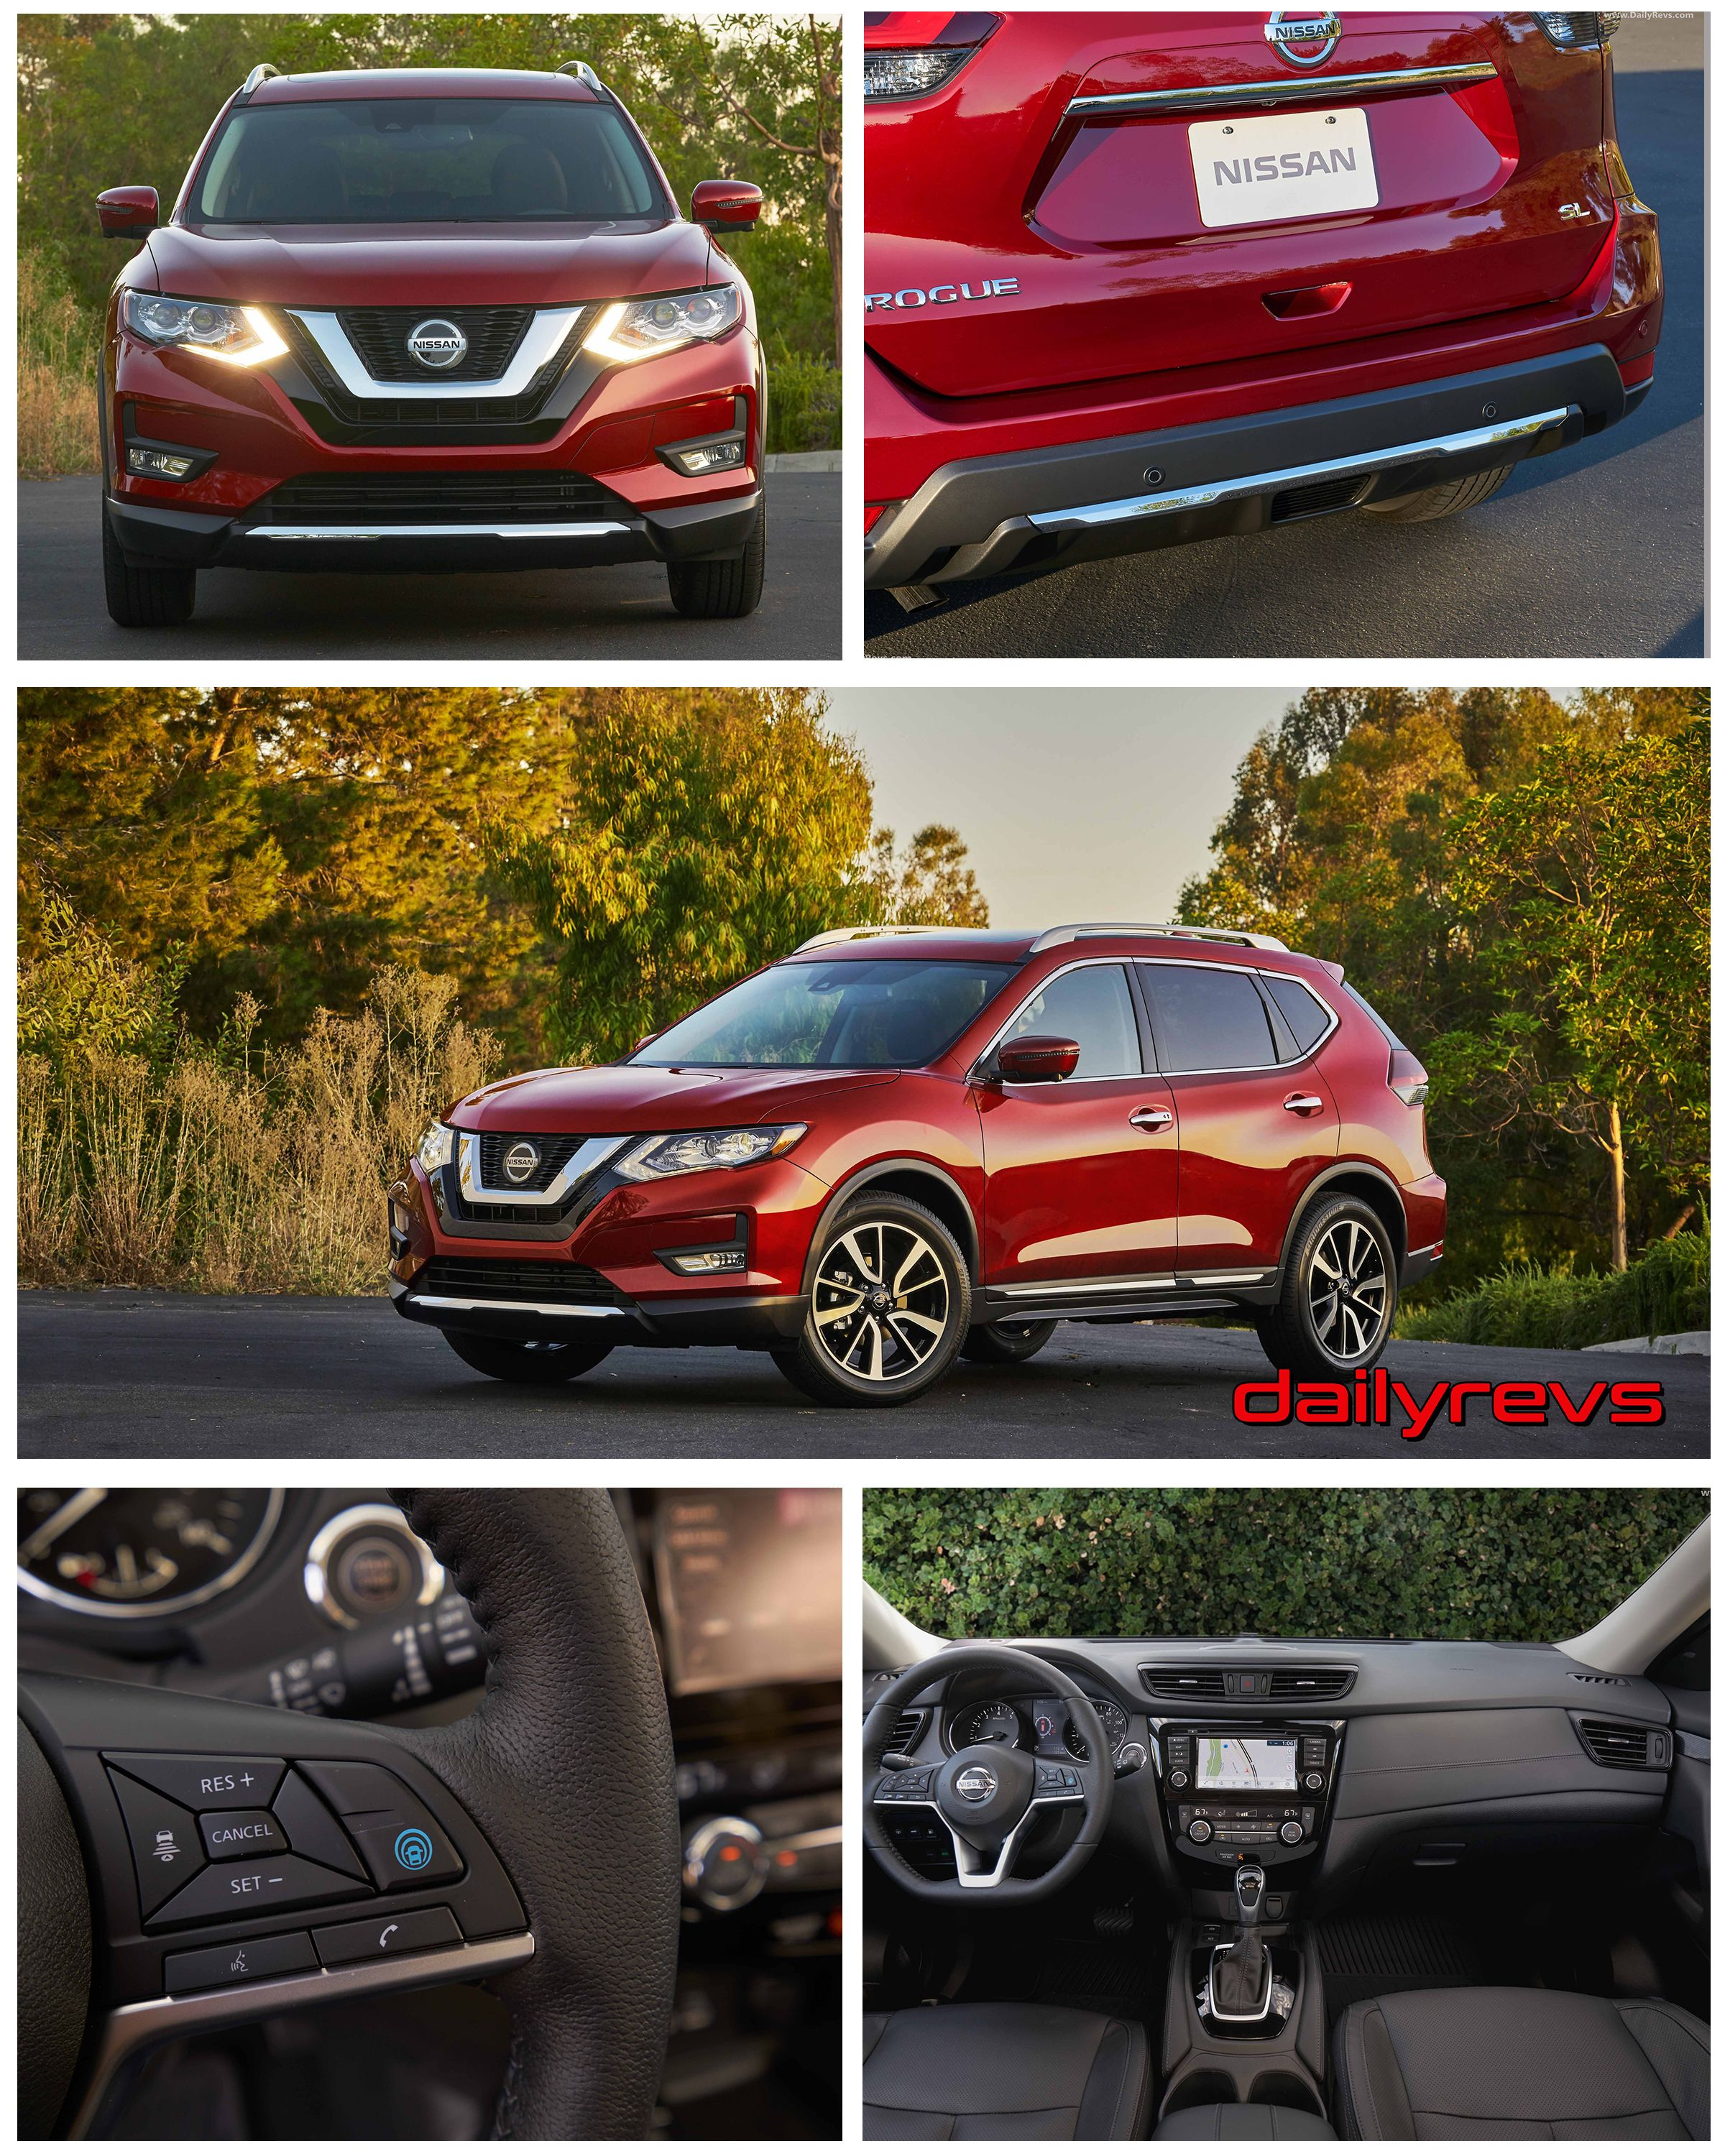 2020 Nissan Rogue in 2020 Nissan rogue